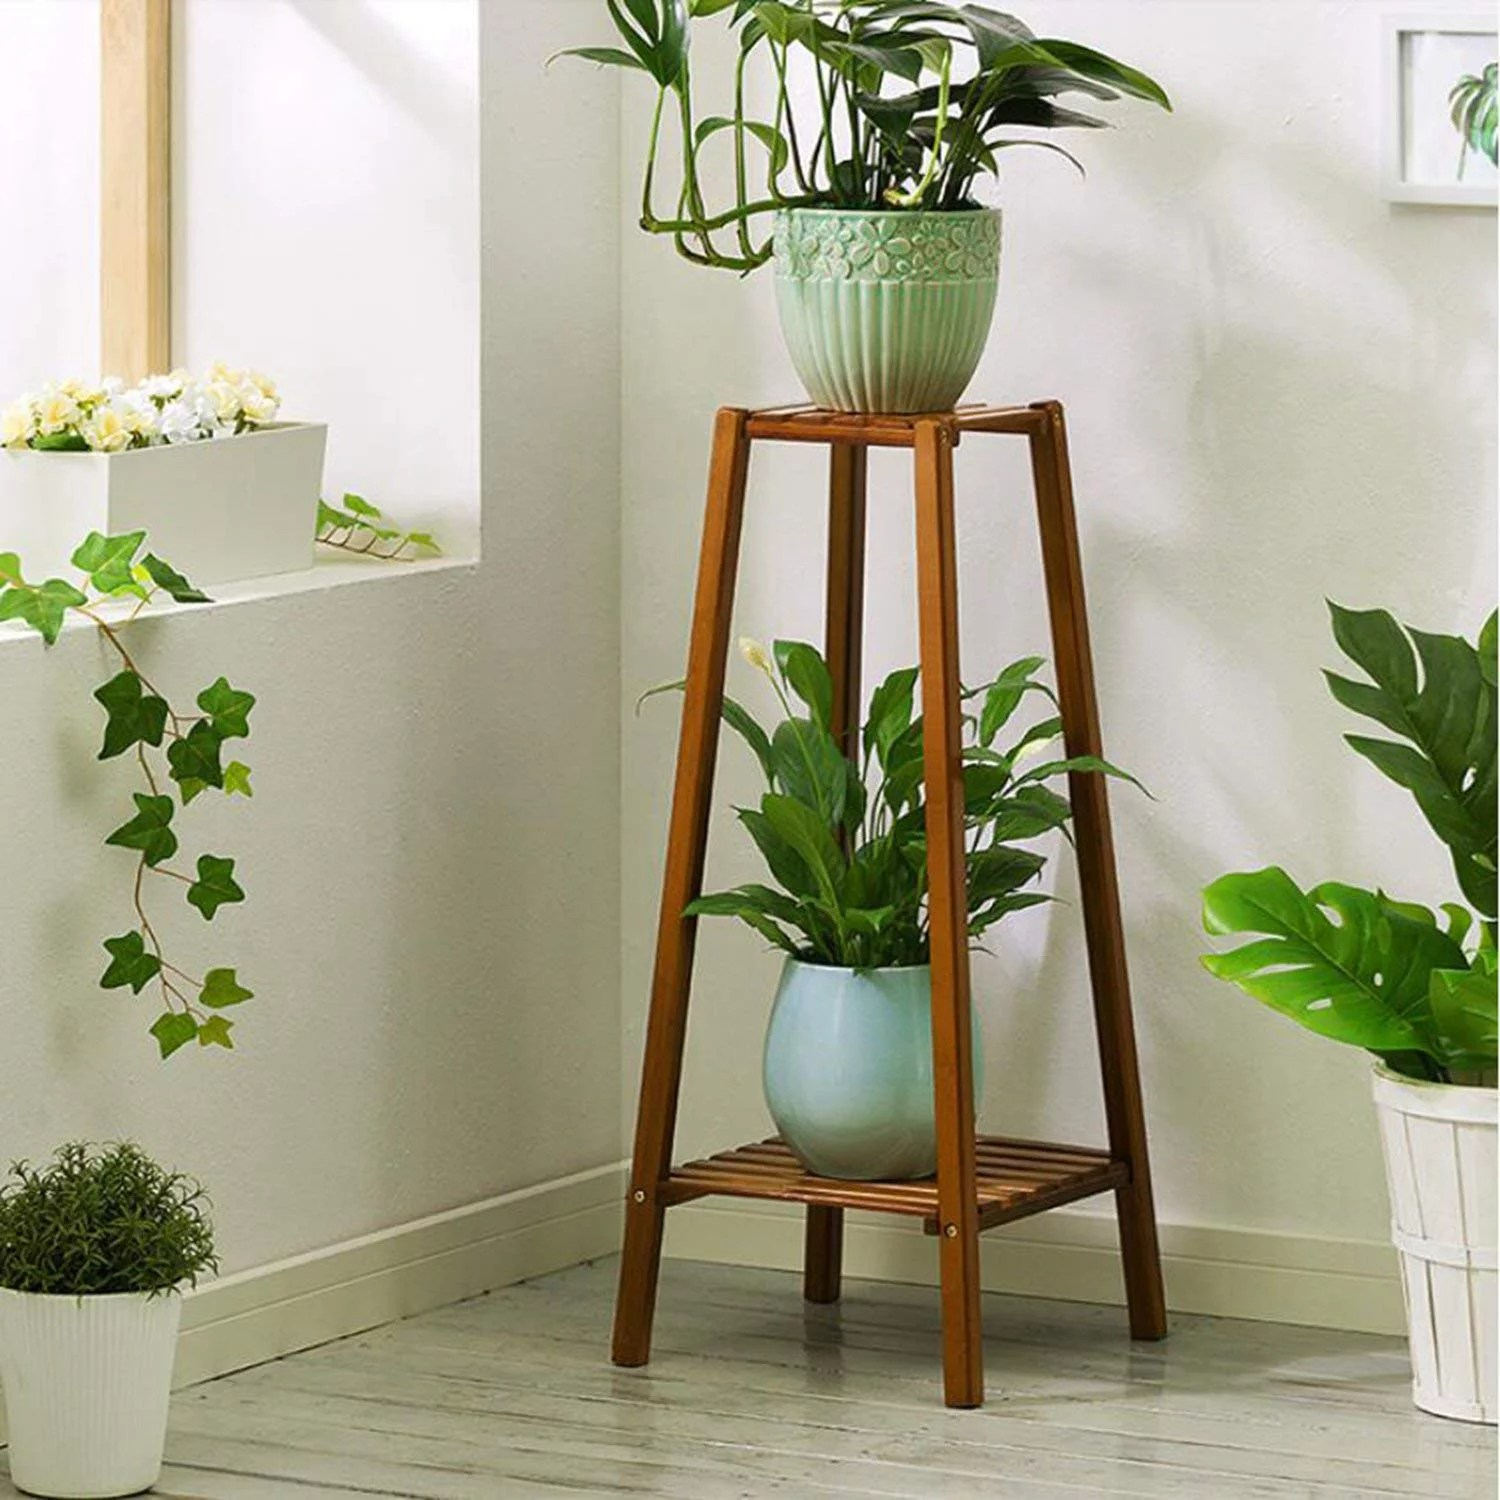 Big Plant Stand Magshion Bamboo 2 Tier Tall Plant Stand Pot Holder Small